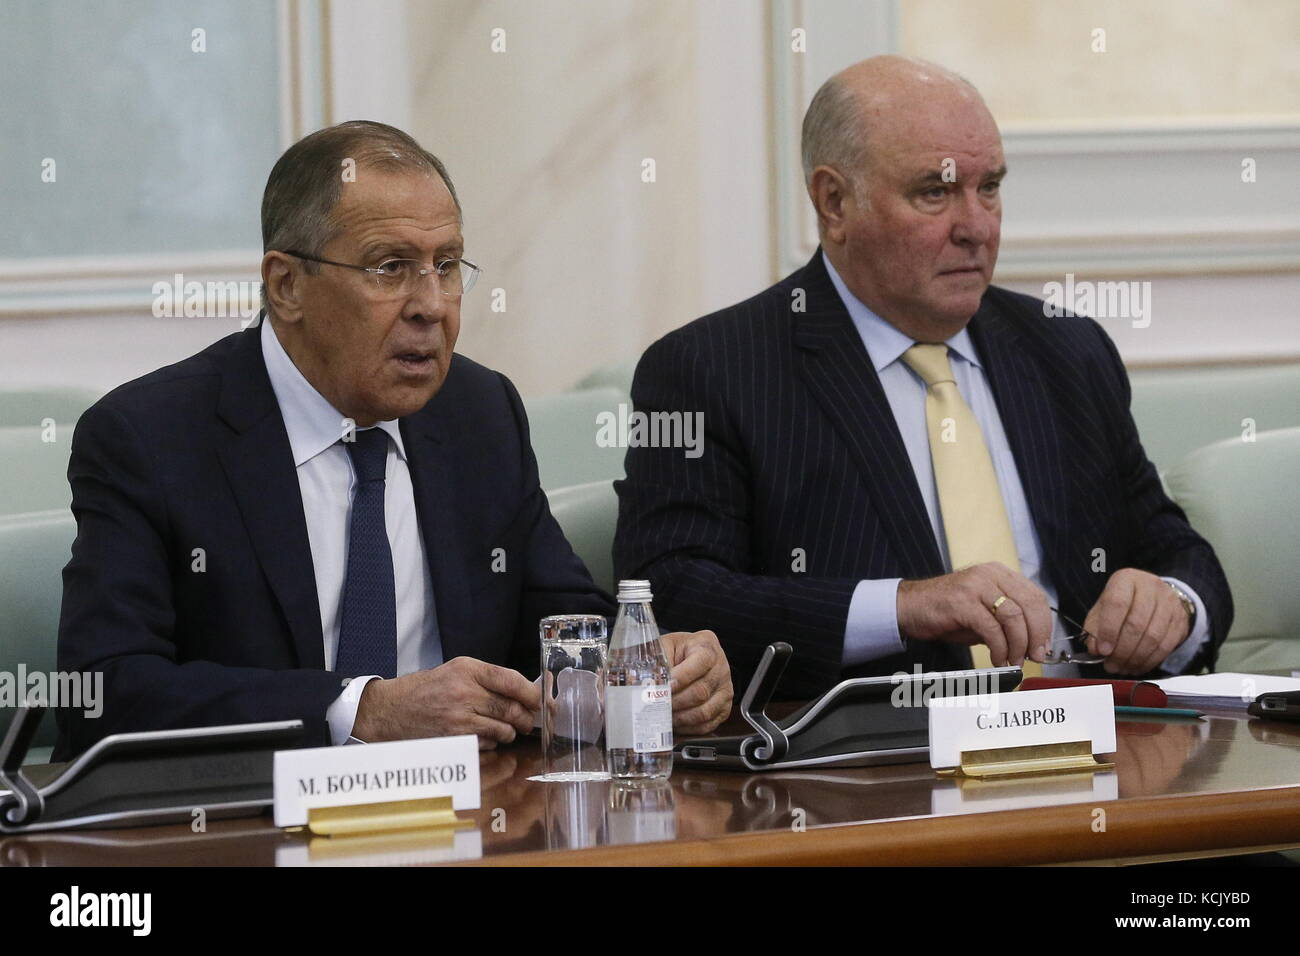 Astana, Kazakhstan. 6th Oct, 2017. Russia's Foreign Minister Sergei Lavrov (L) and his deputy Grigory Karasin - Stock Image